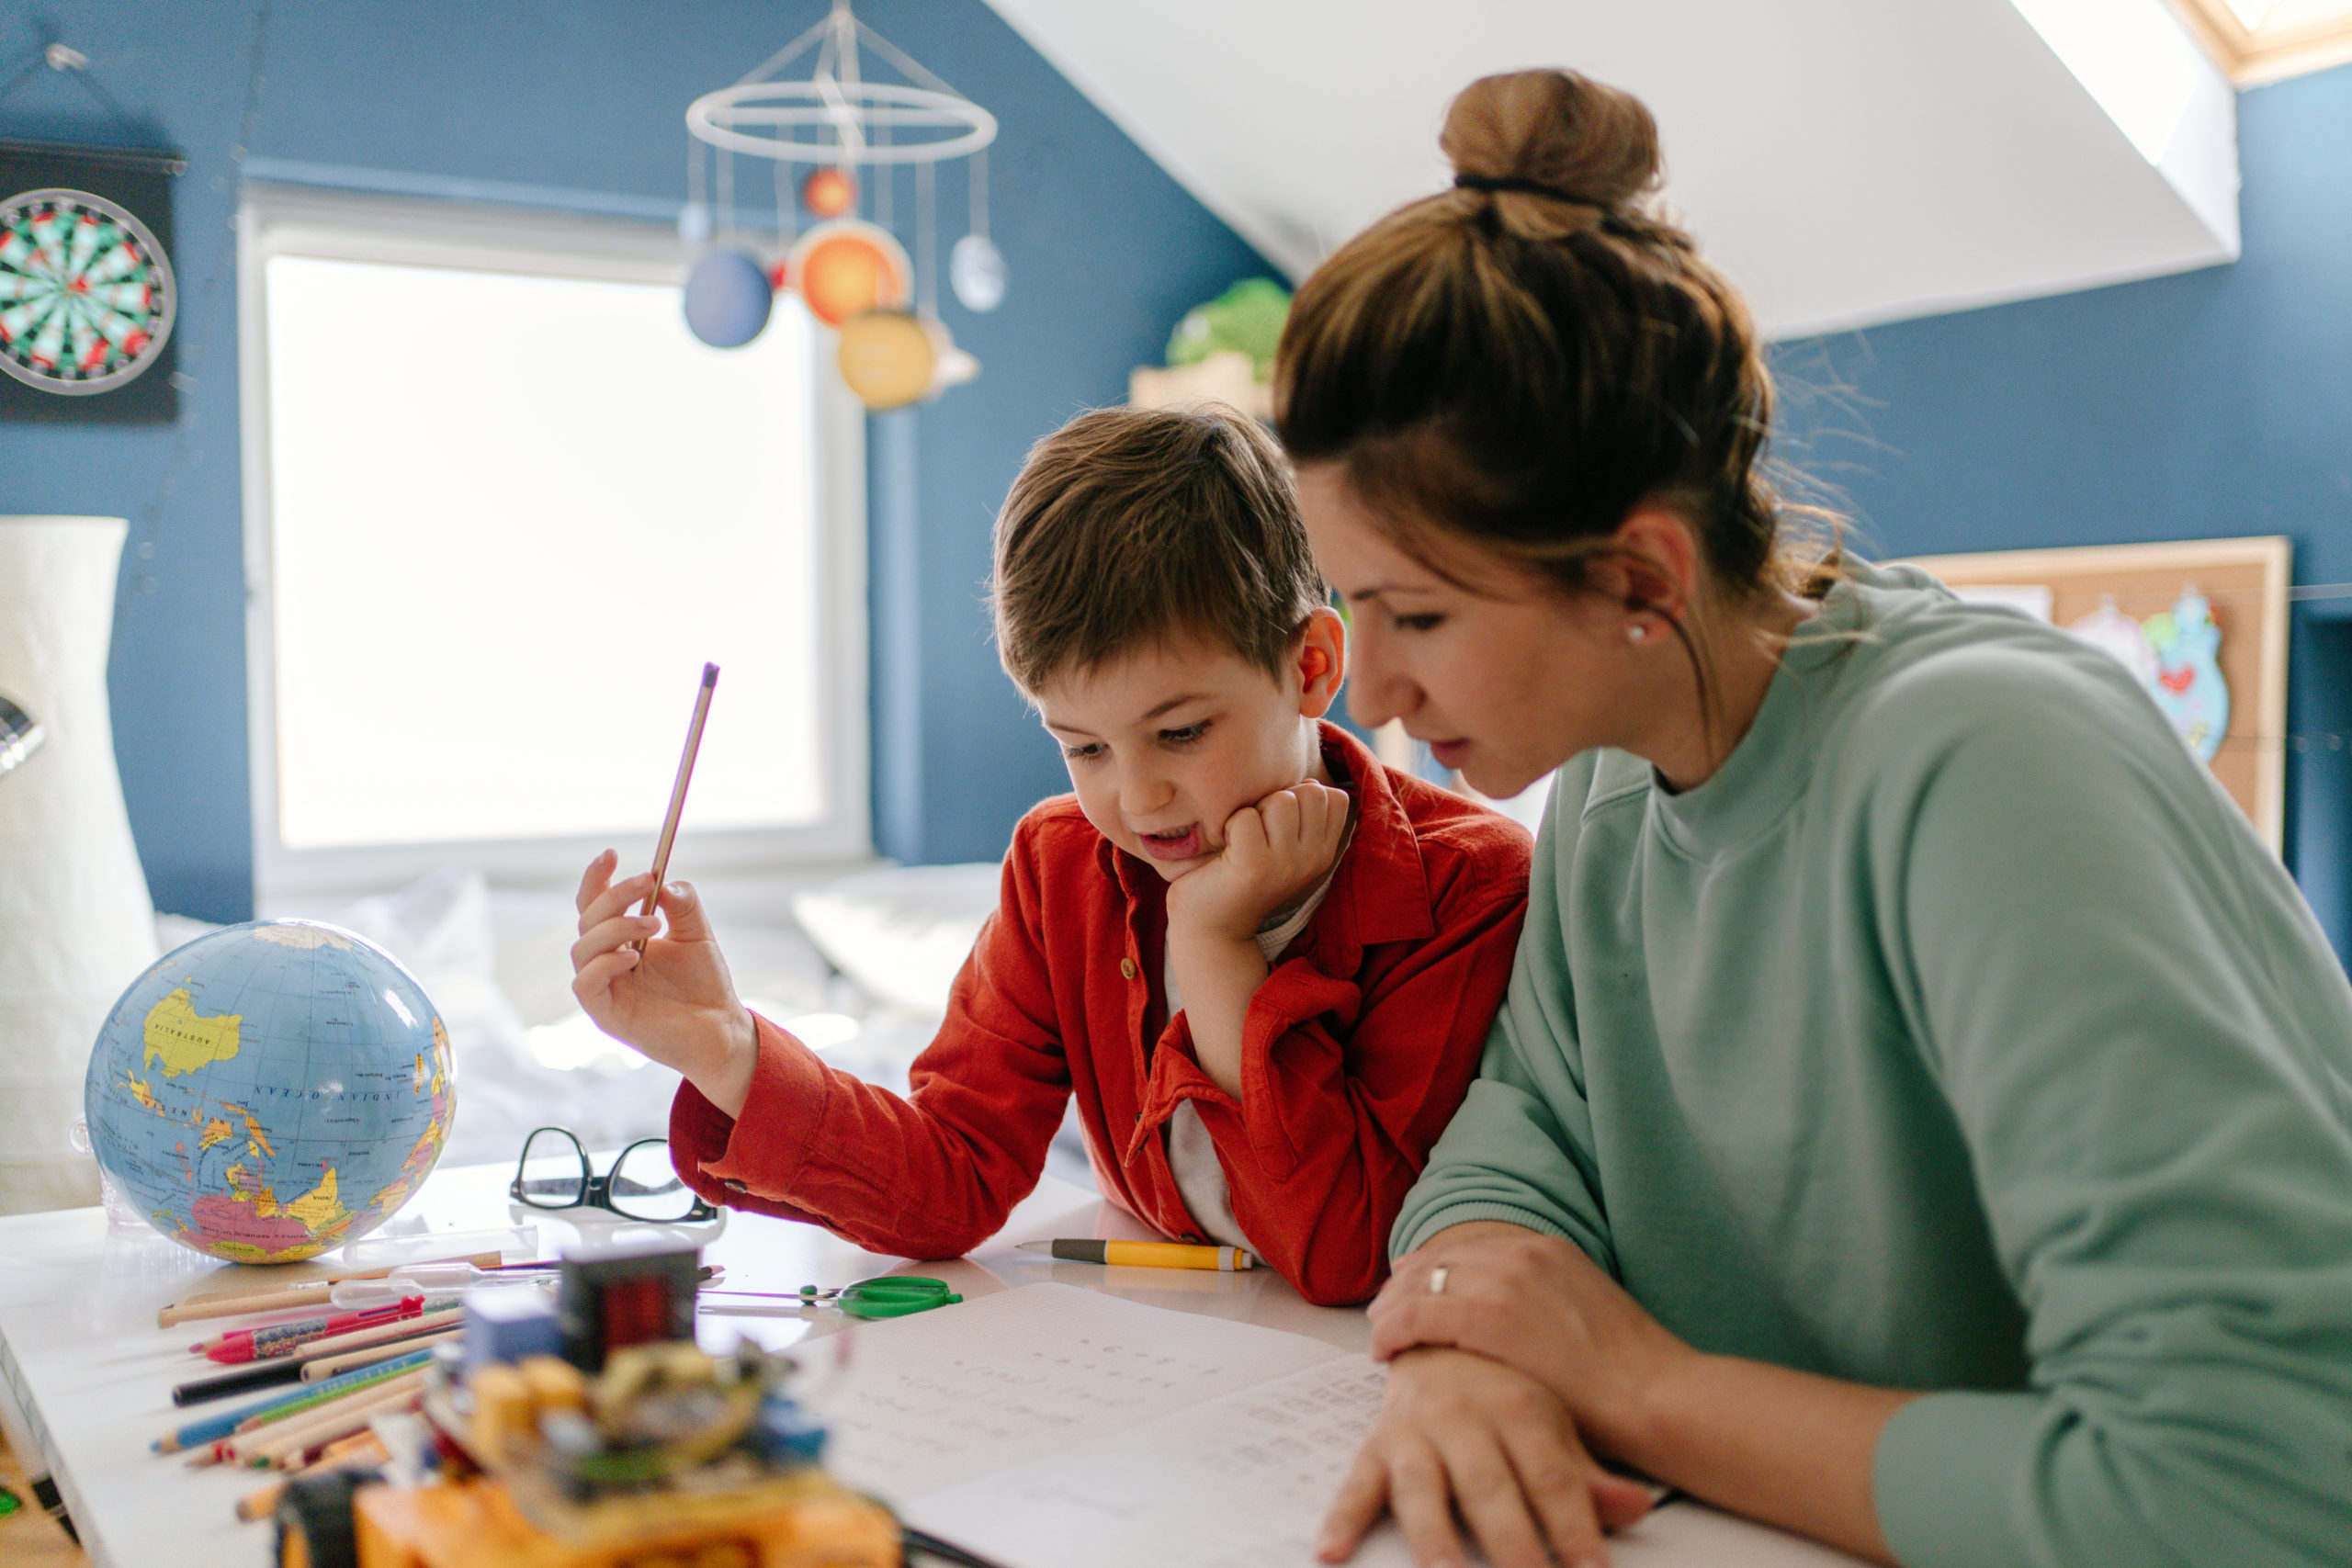 Customizing K-12 education to meet the individual needs of students and families